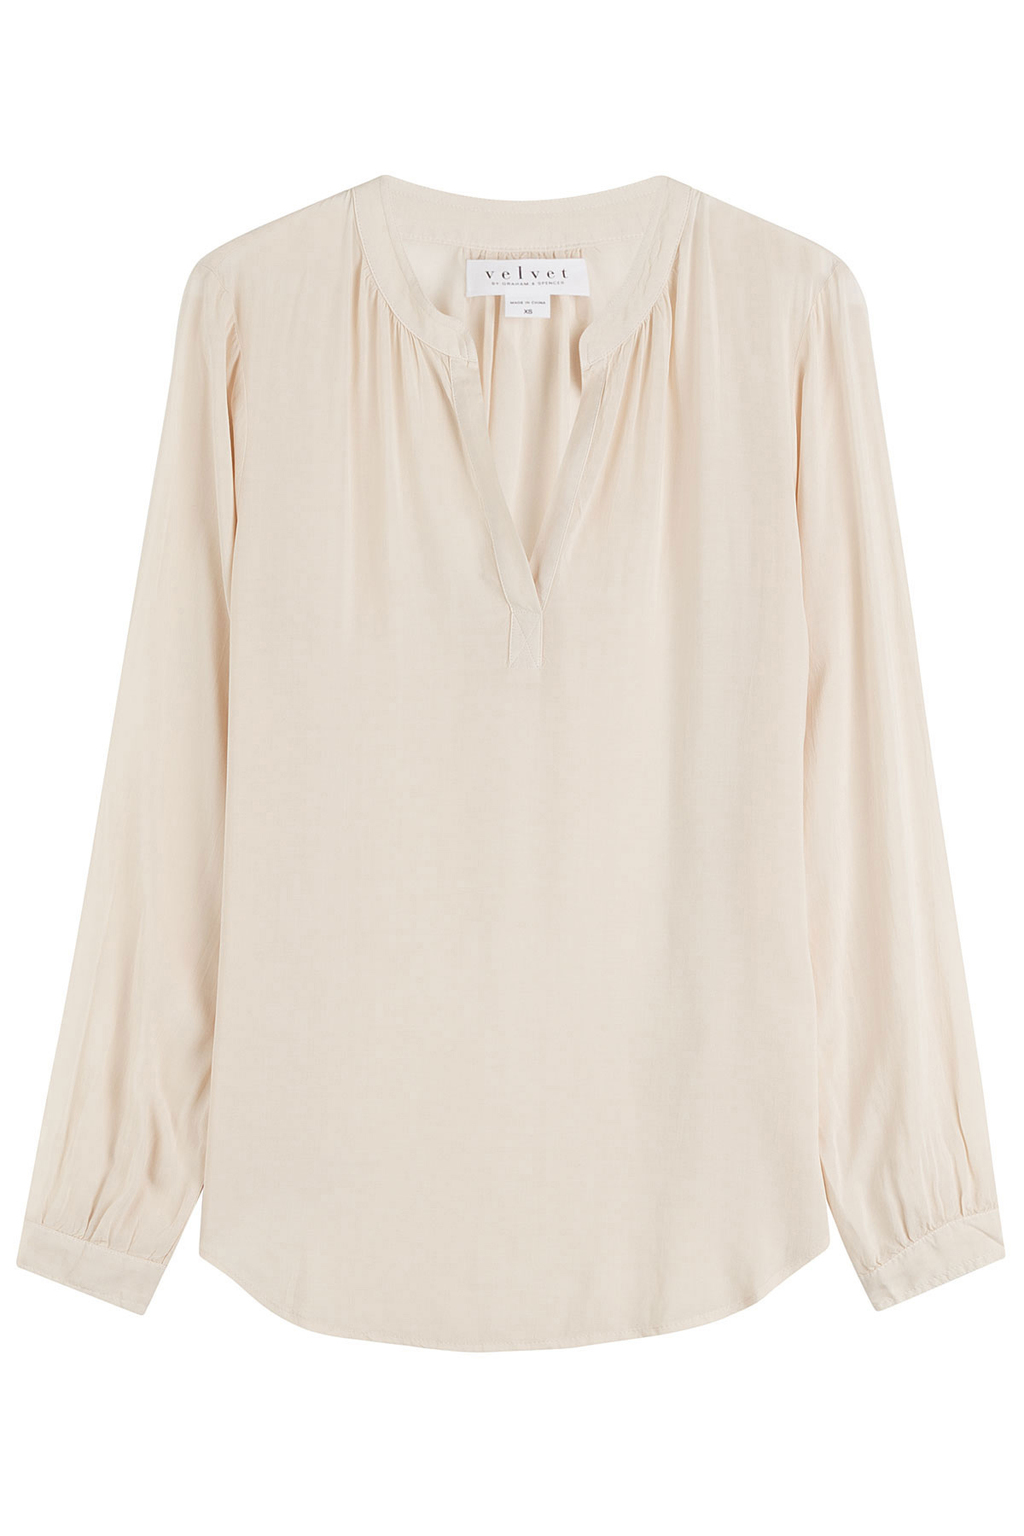 Blouse - neckline: v-neck; pattern: plain; length: below the bottom; style: blouse; predominant colour: ivory/cream; occasions: casual, creative work; fibres: viscose/rayon - 100%; fit: loose; sleeve length: long sleeve; sleeve style: standard; texture group: crepes; pattern type: fabric; season: s/s 2016; wardrobe: basic